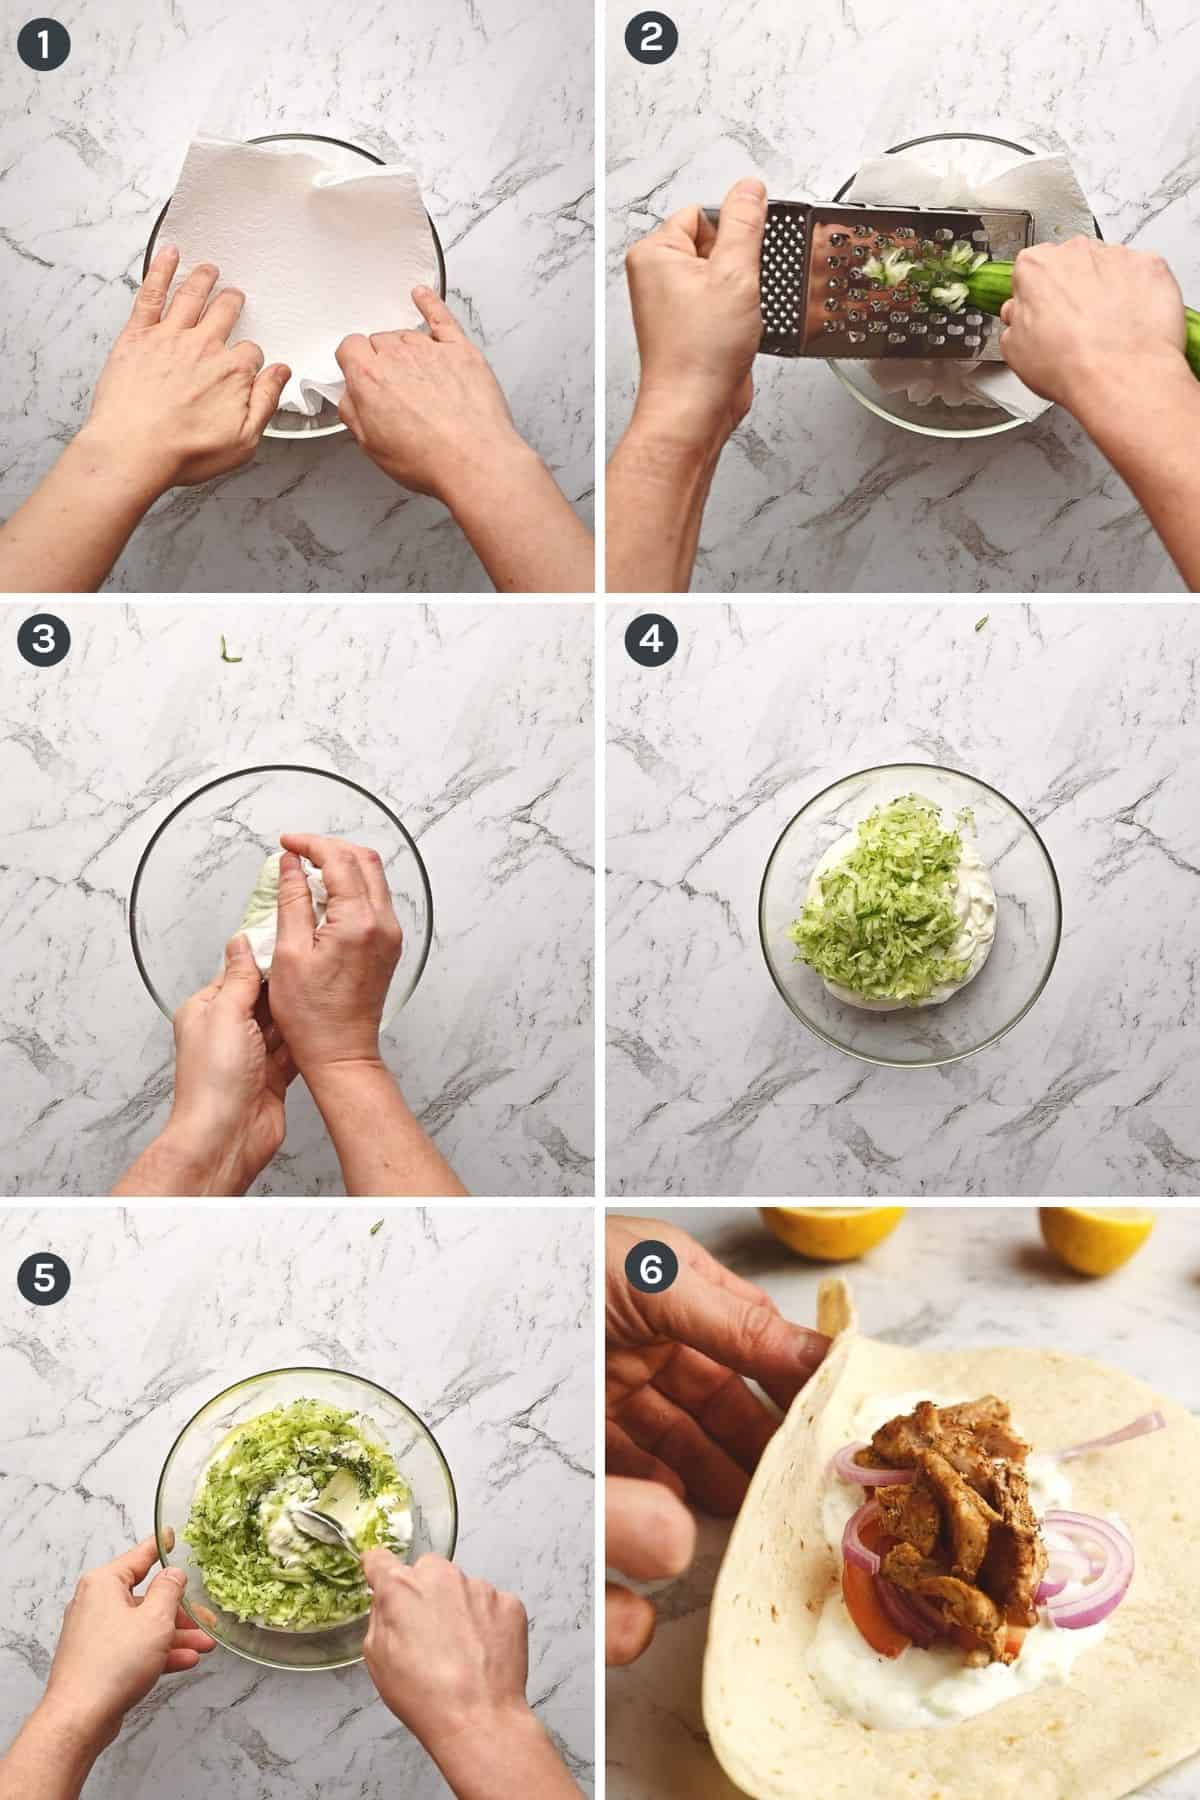 step by step instructions on how to make tzatziki